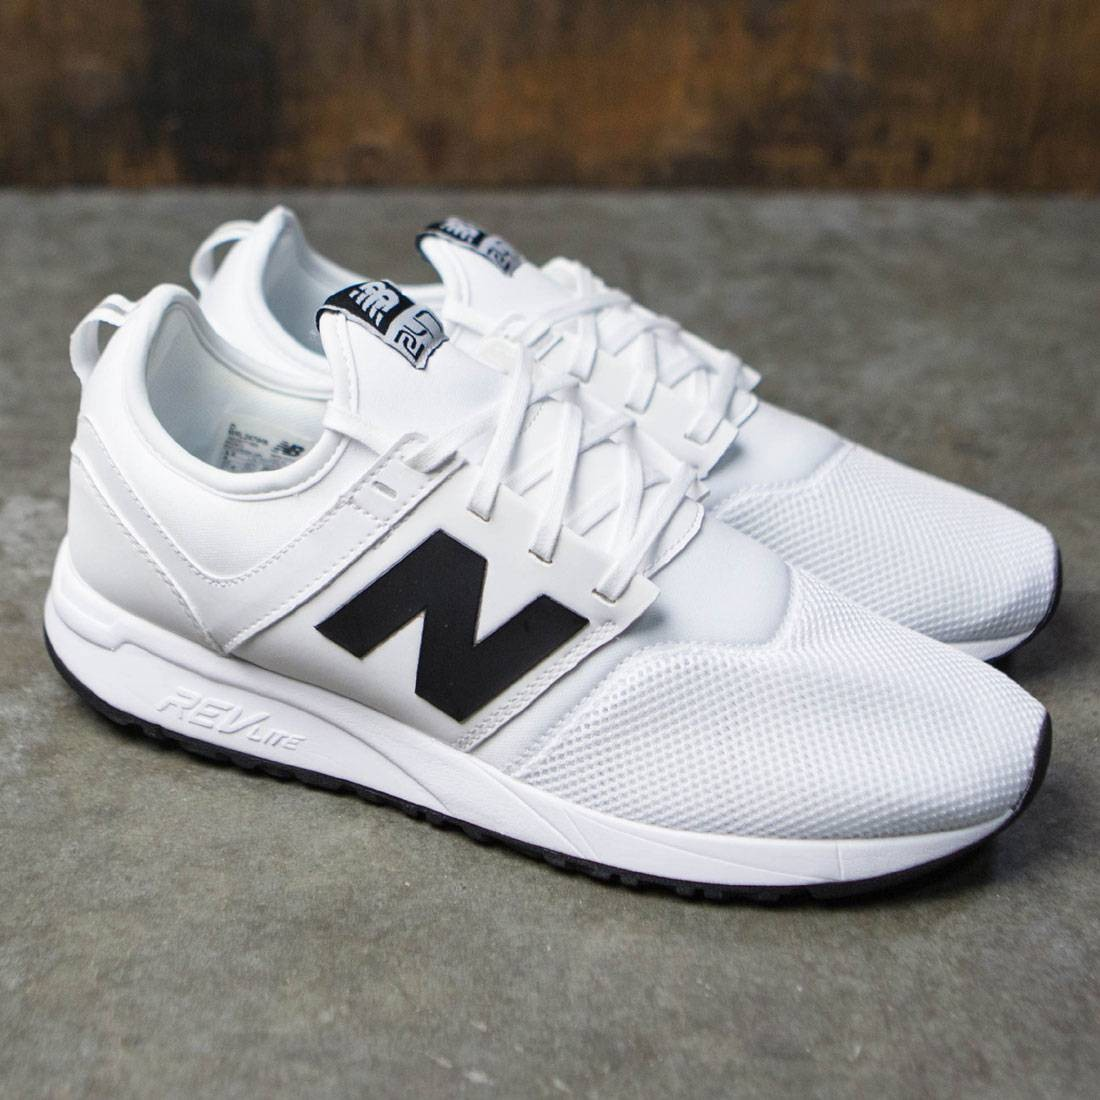 4c4a1069b1ce3 Cheap new balance 247 classic white Buy Online >OFF54% Discounted